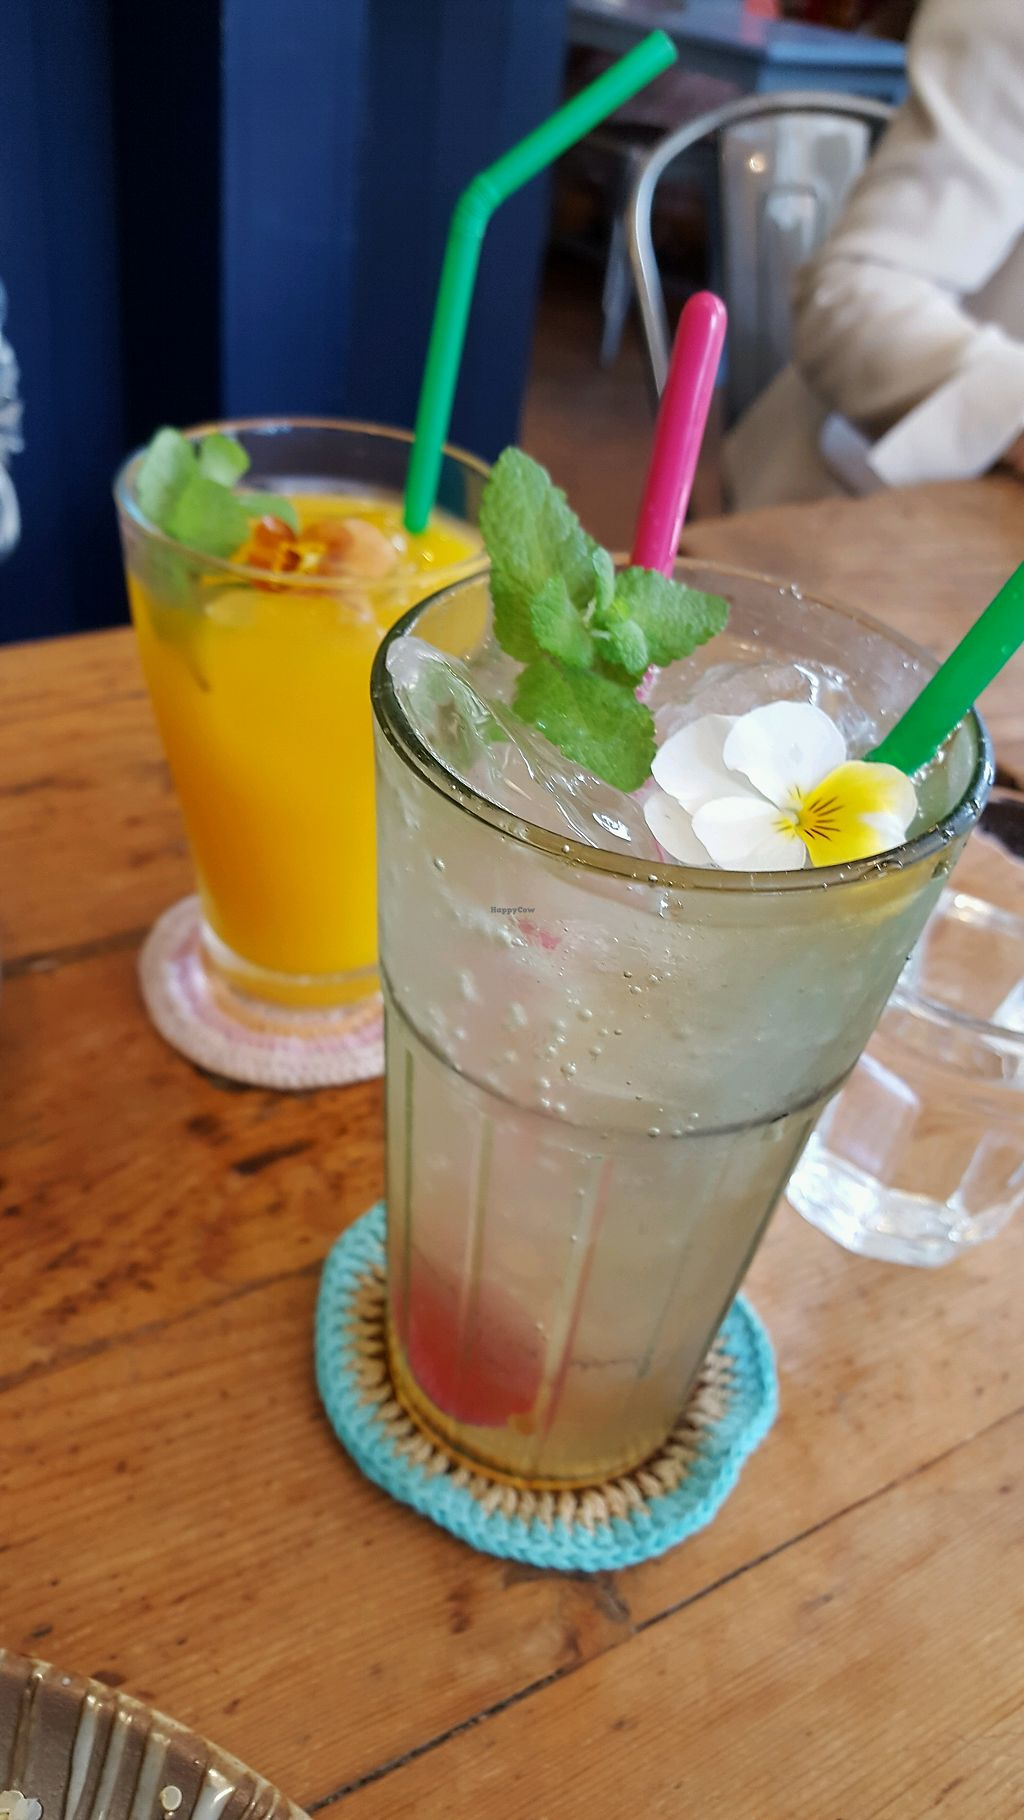 """Photo of Monstyle  by <a href=""""/members/profile/MelissaBlevens"""">MelissaBlevens</a> <br/>Mango juice and homemade energy juice <br/> April 20, 2018  - <a href='/contact/abuse/image/83253/388340'>Report</a>"""